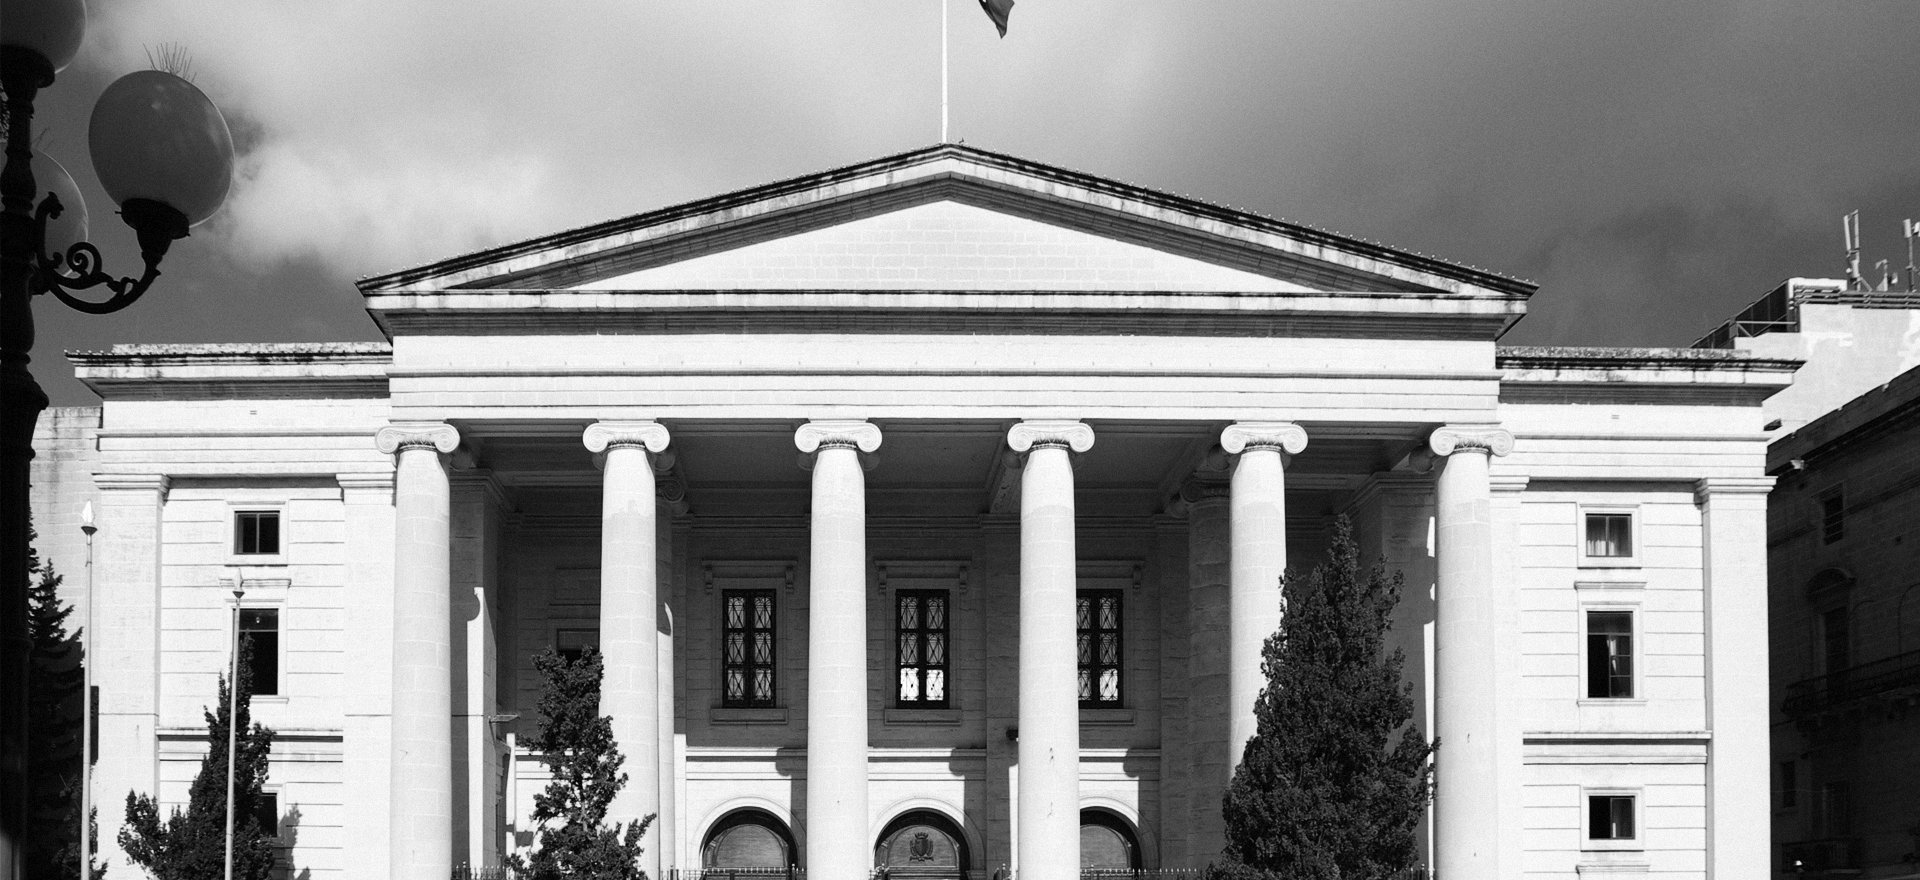 95 Citizens and residents of Malta sue Superintendent of Public Health for Breach of Human Rights